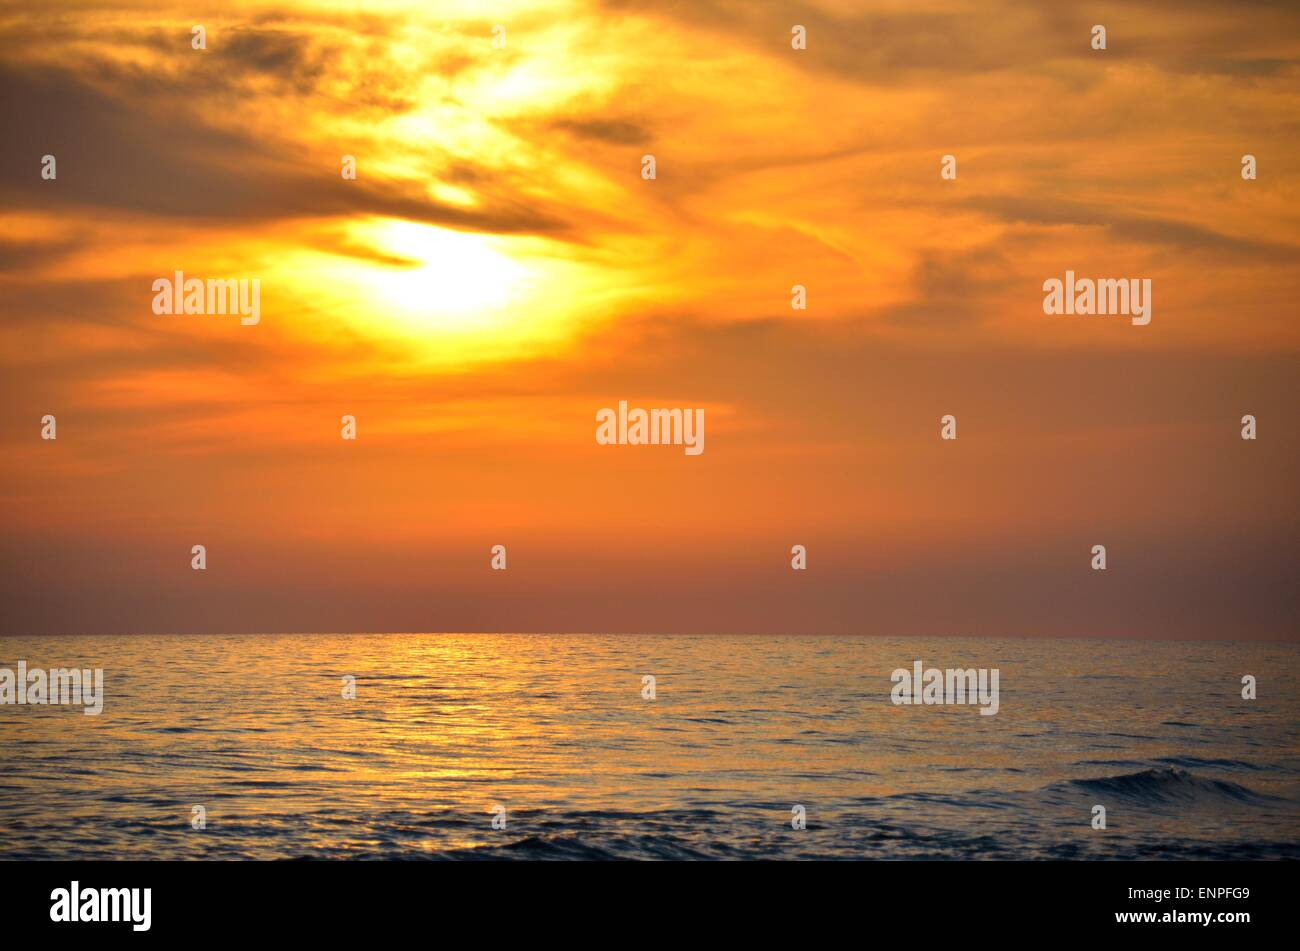 Sunset over the tropical ocean waves located at Panama City, Florida, USA Stock Photo